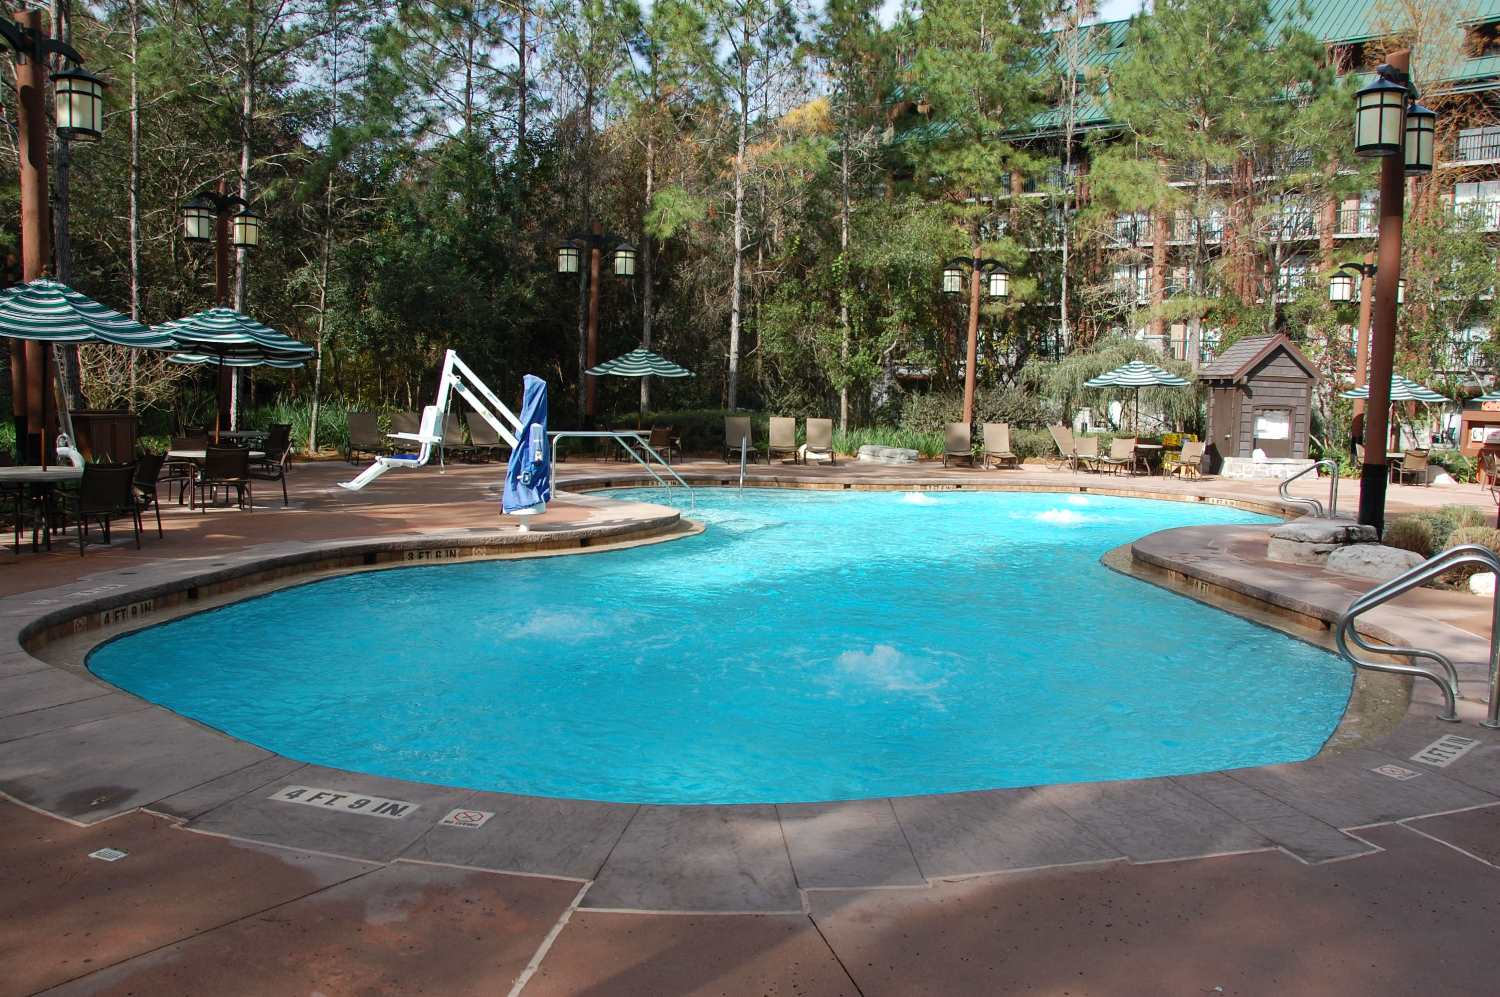 The swimming pool at the villas at Disney's Wilderness Lodge in the Magic Kingdom area of the Walt Disney World Resort in Florida.